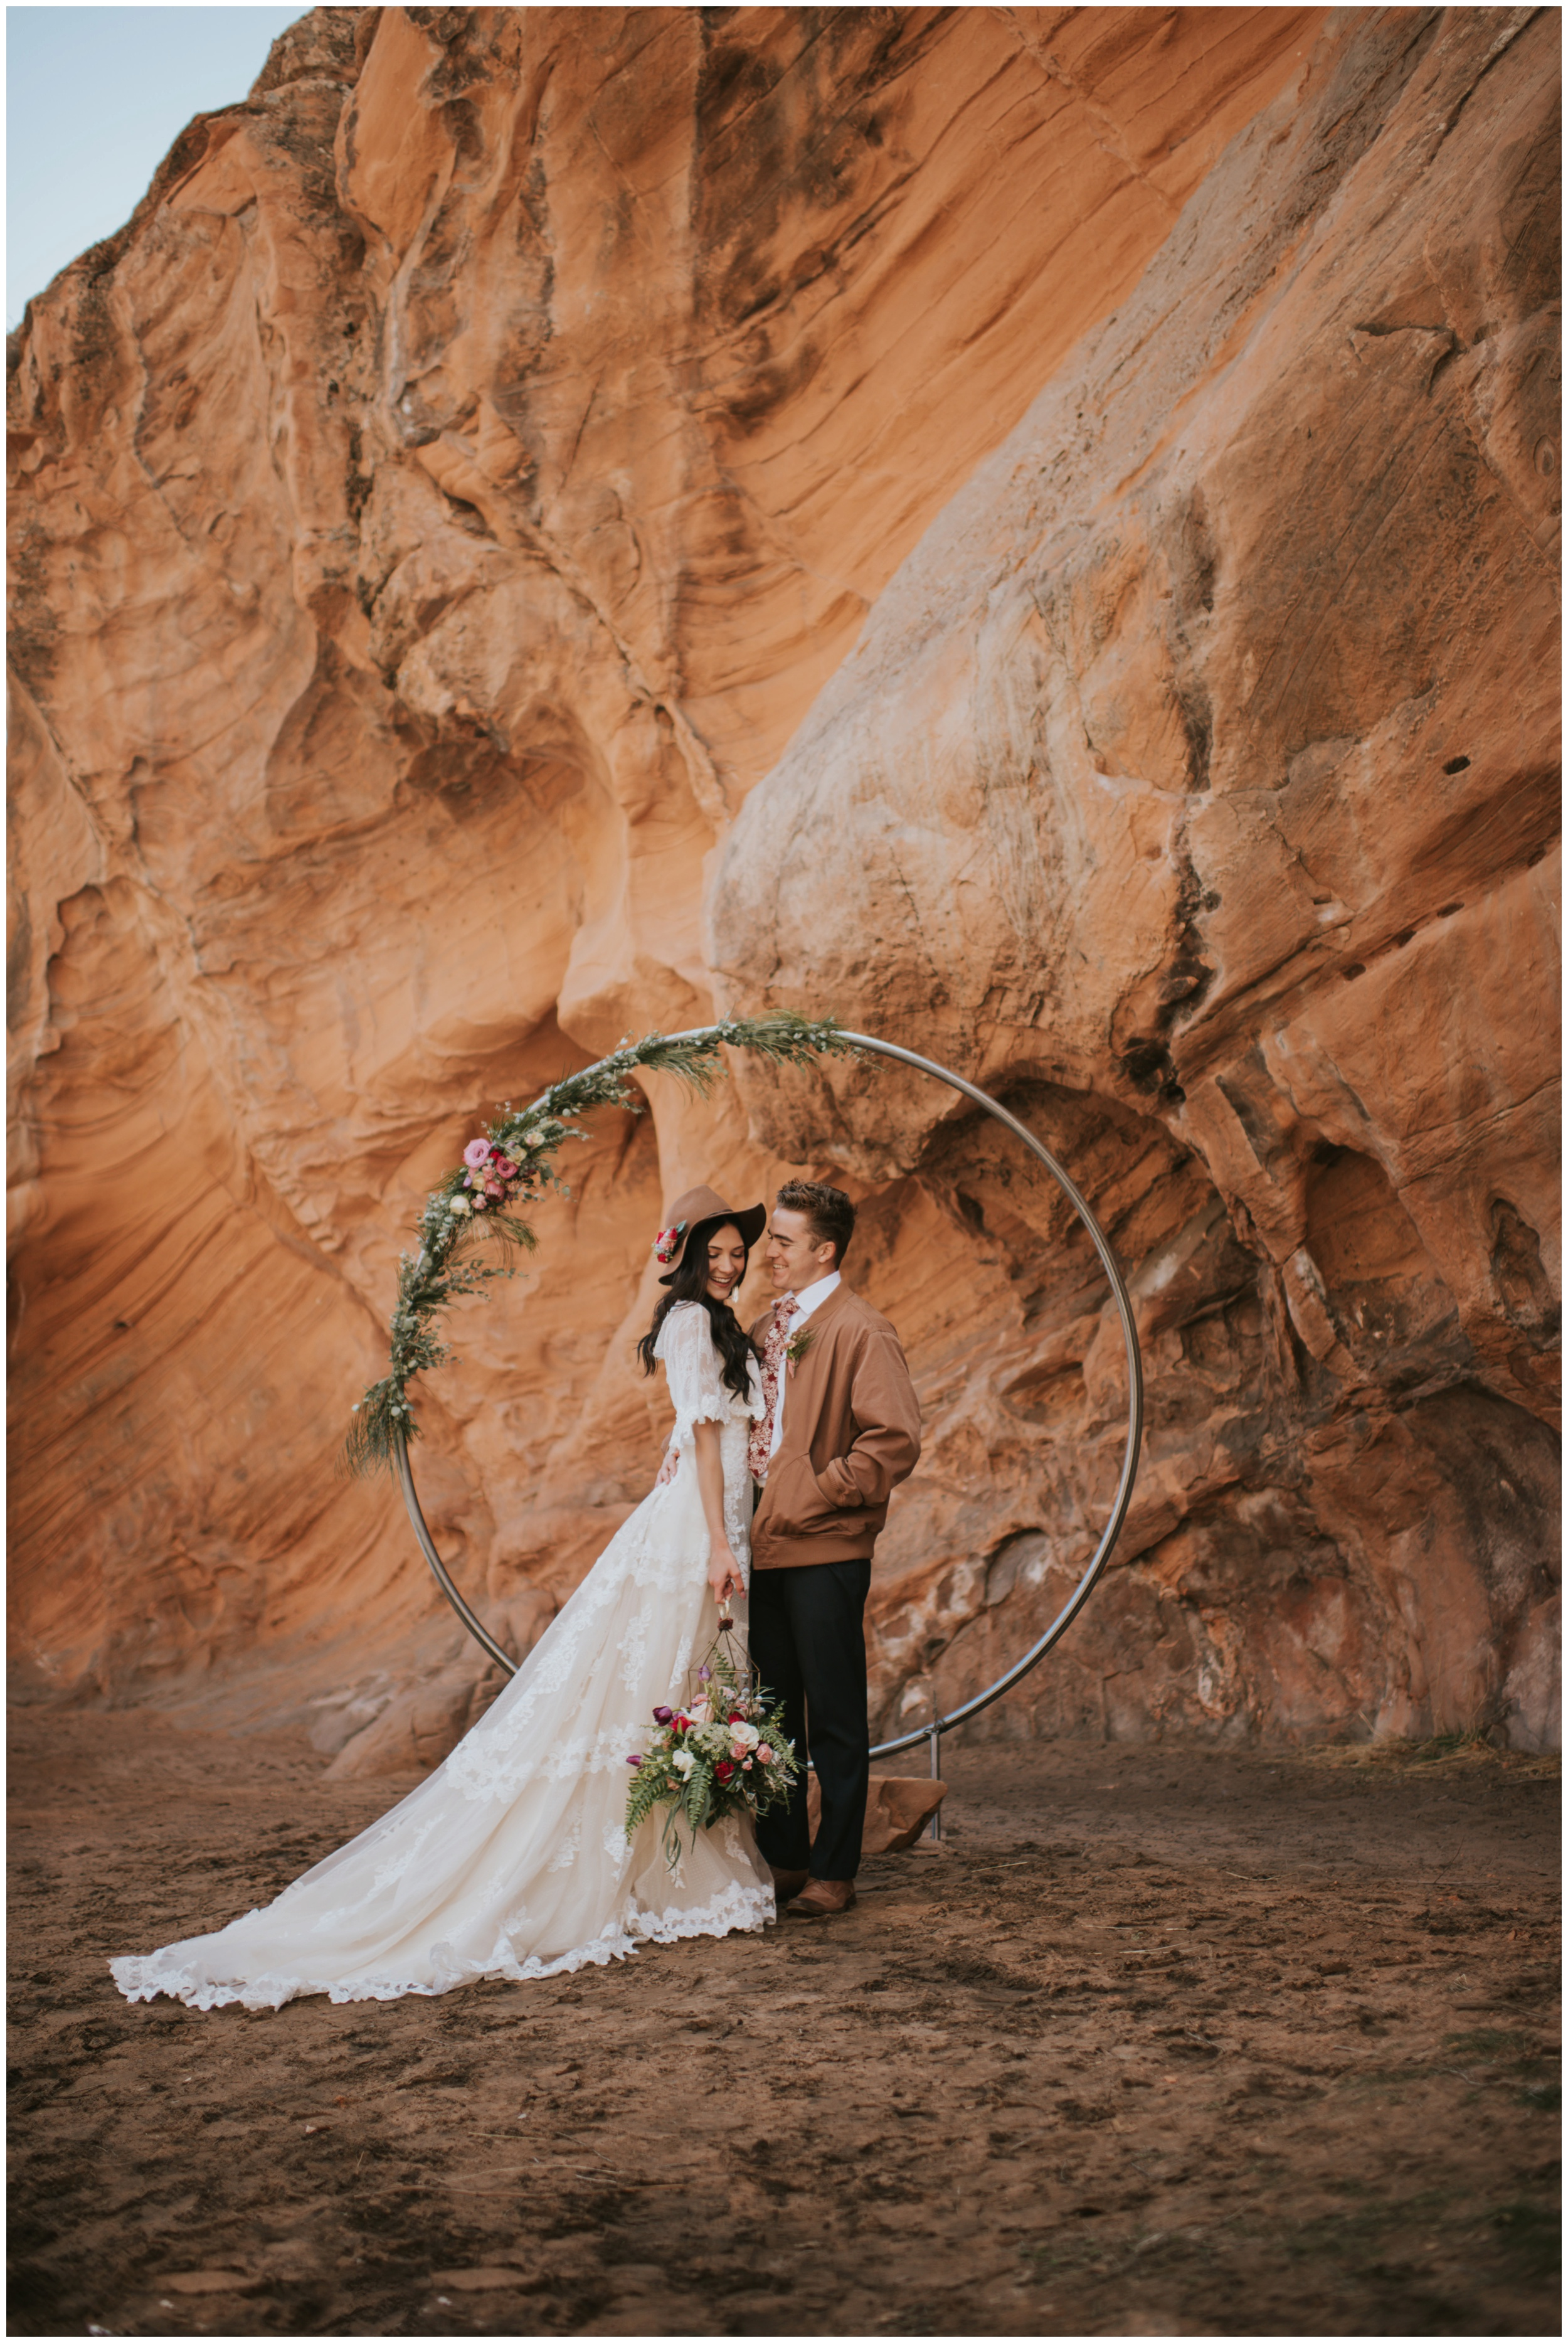 redrockutah-idahophotographer-utahphotographer-wedding-10.jpg